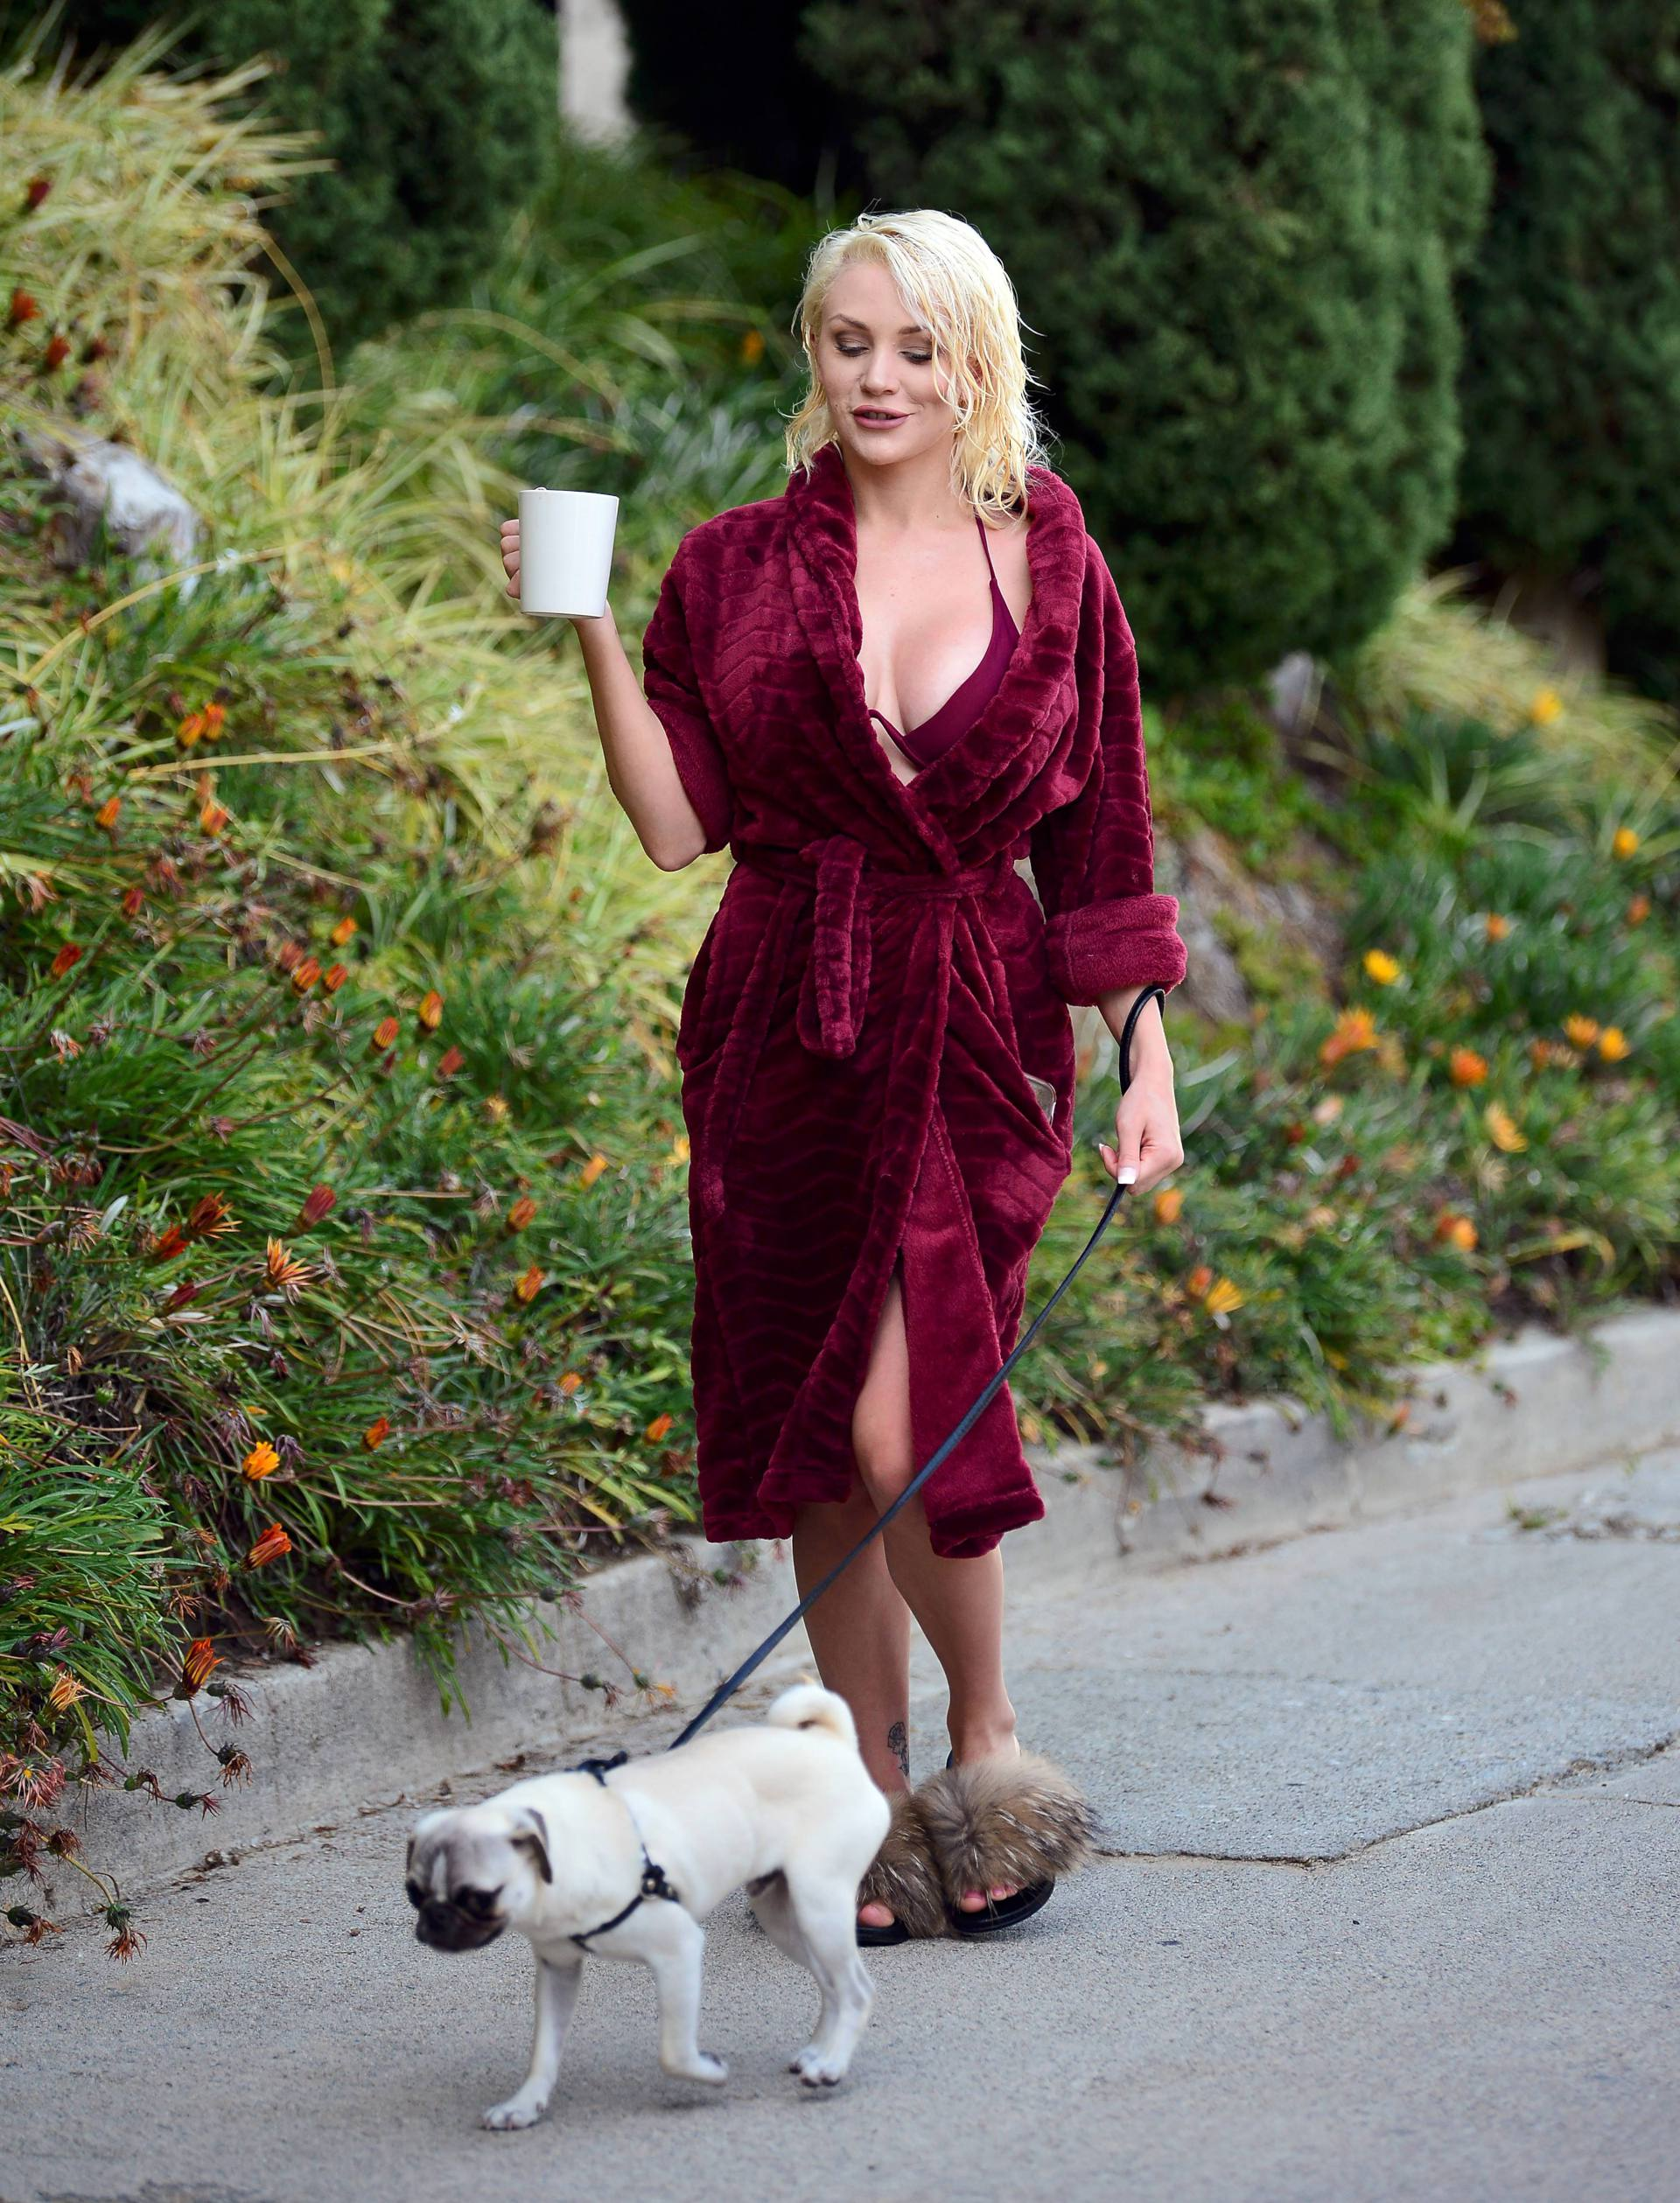 Courtney Stodden Sexy Boobs In Risque Robe Out In Los Angeles 0014